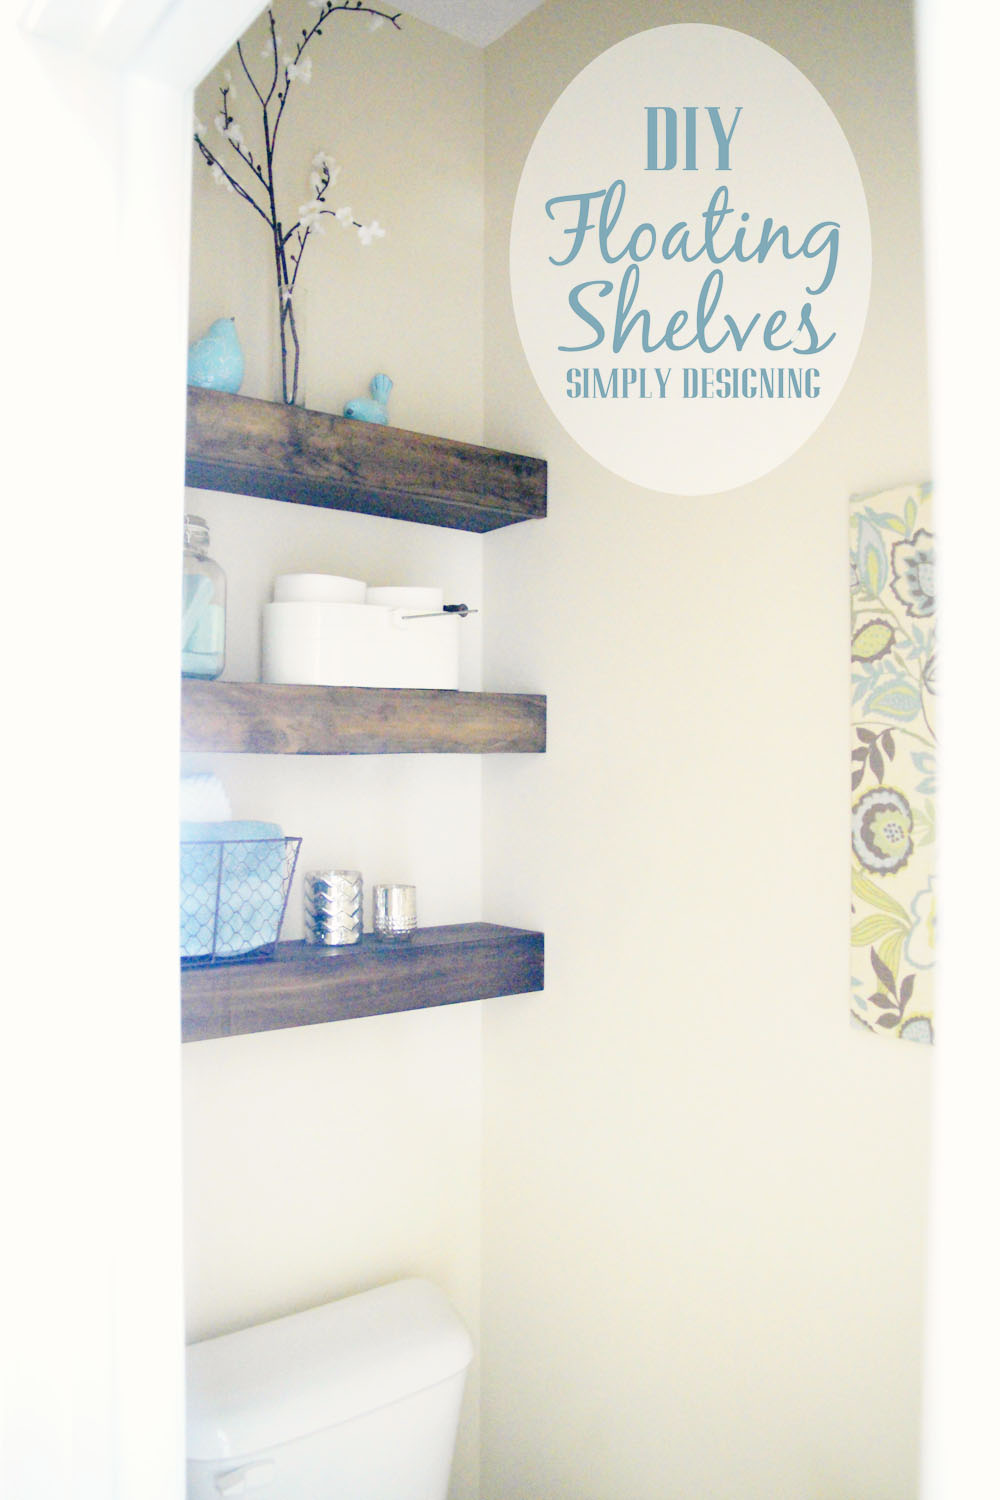 diy floating shelves how measure cut and install for bathroom are really easy make they the perfect shoe cupboard organiser peel stick floor primer wall mounted desk plans wrought